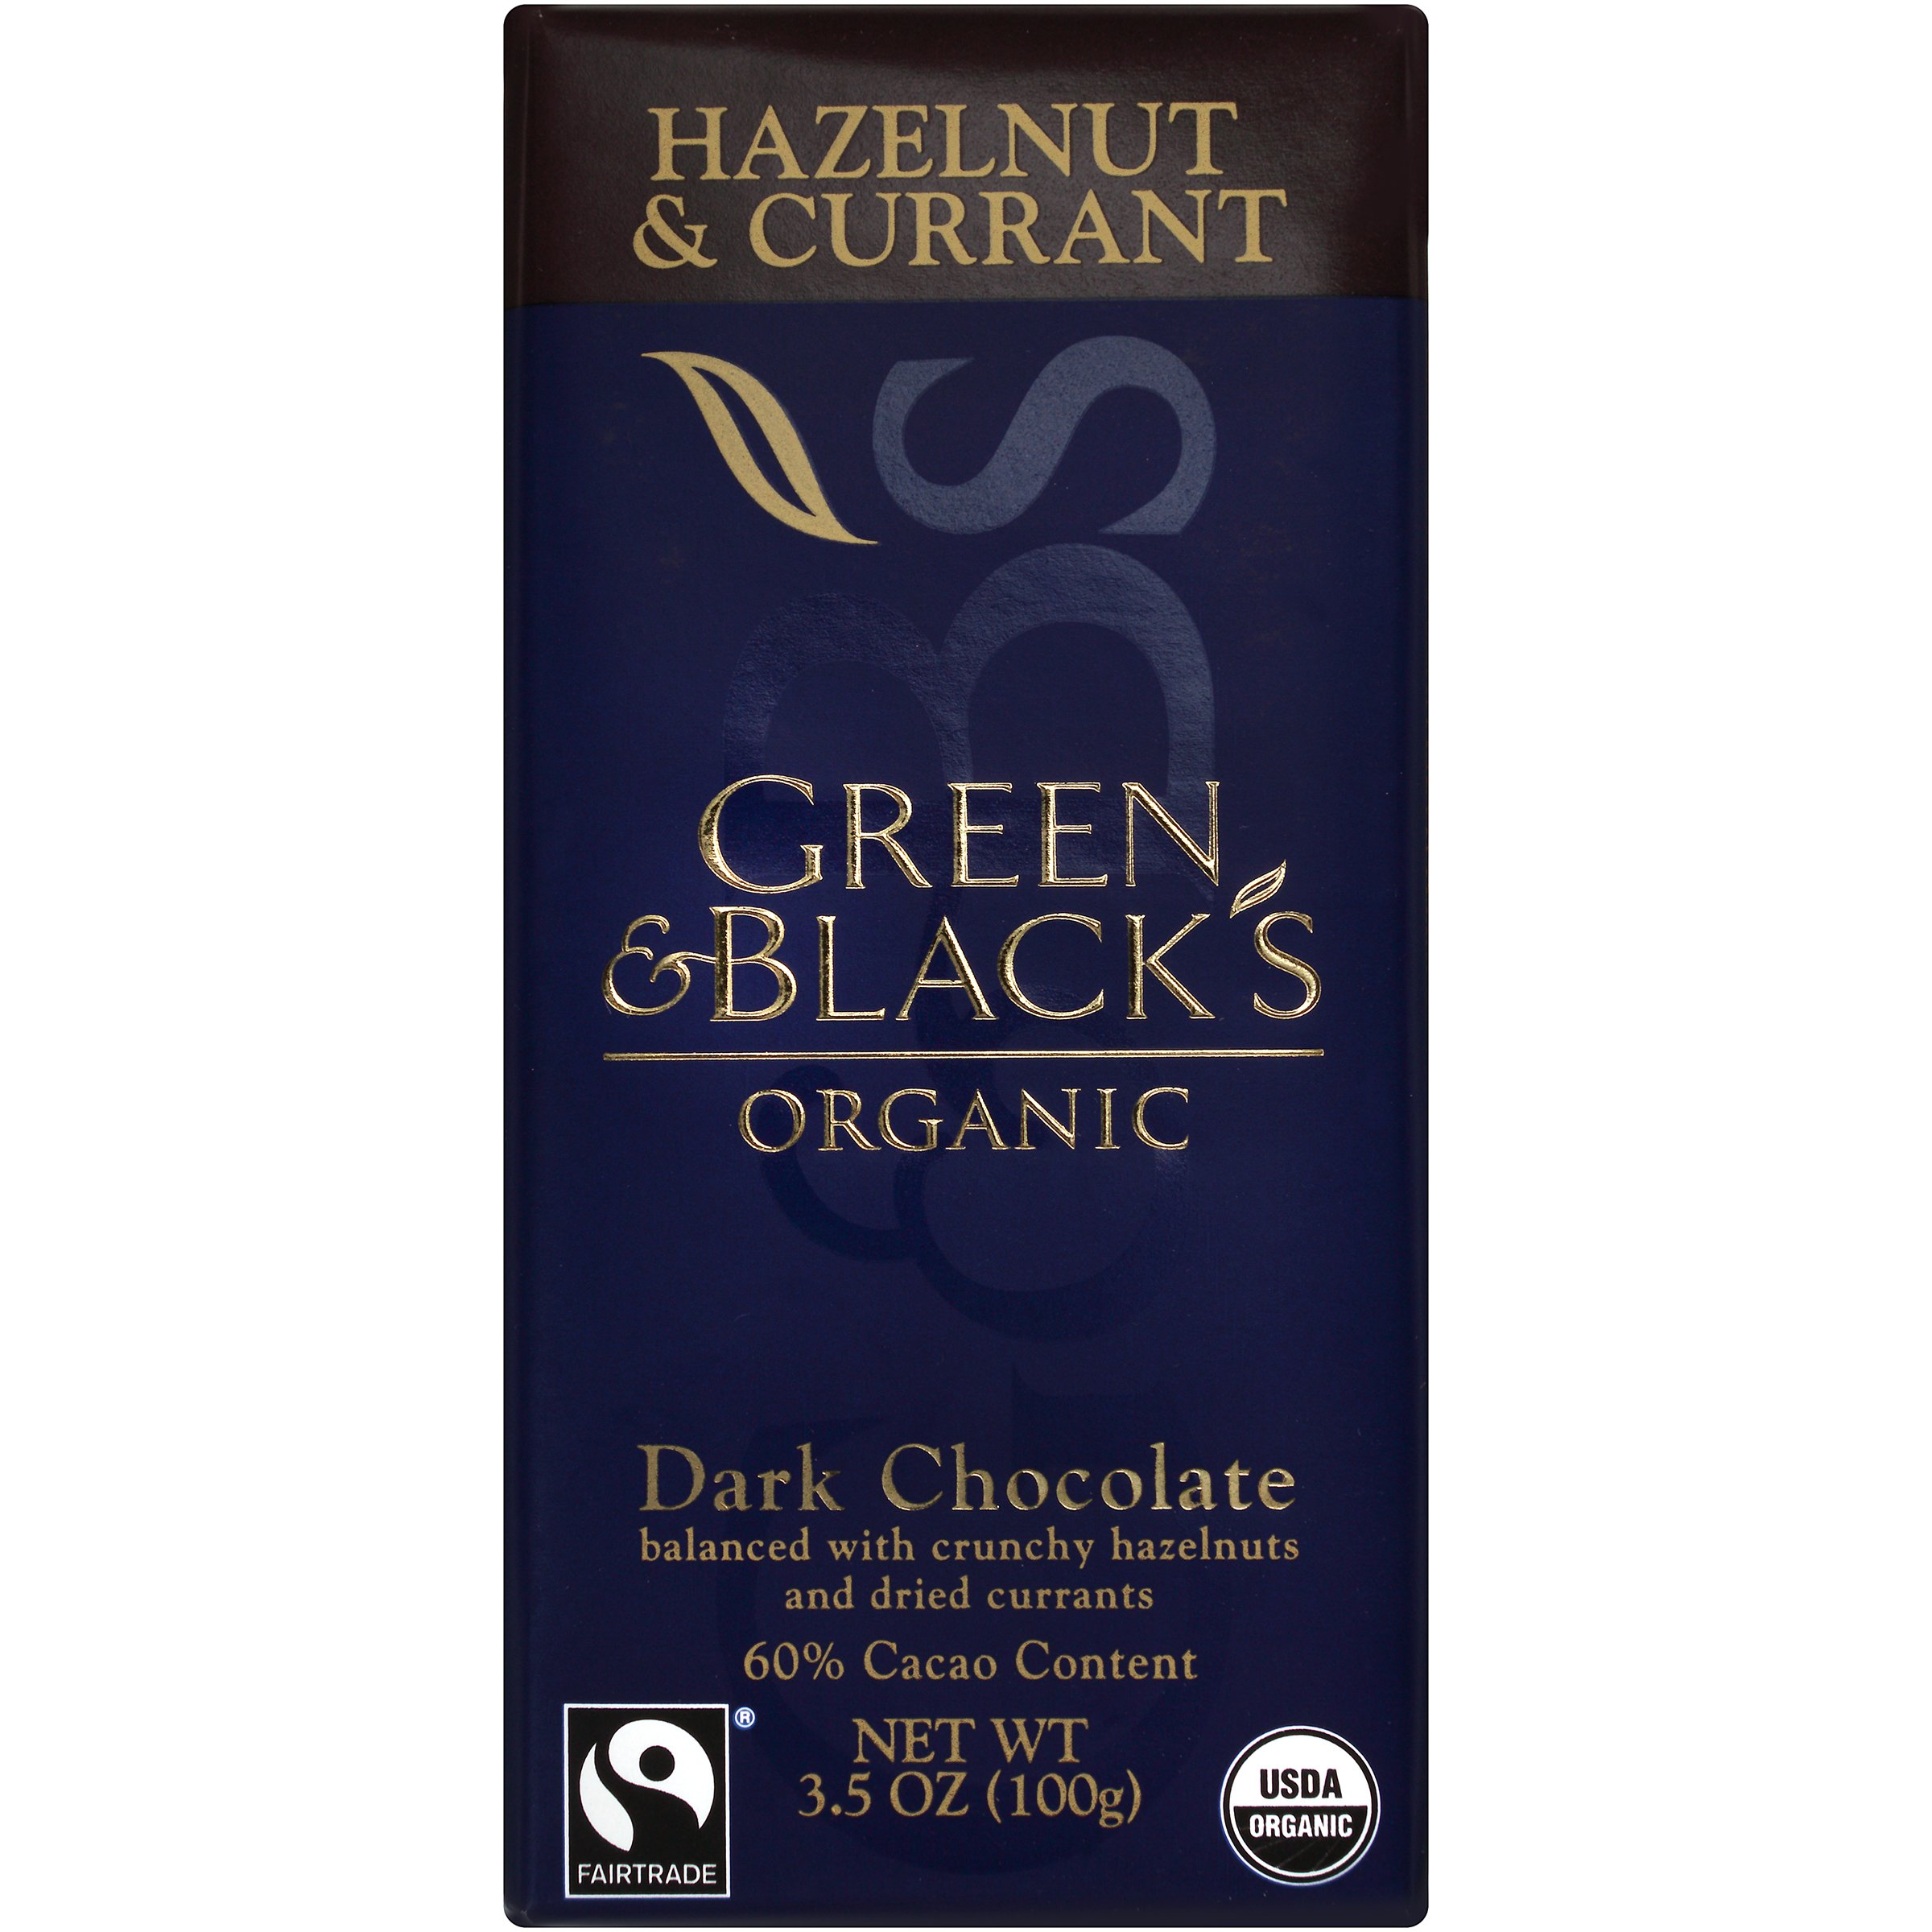 Green & Black's Organic Dark Chocolate with Currant and Hazelnut, 60% Cacao, 3.5 Ounce Bars (Pack of 10)